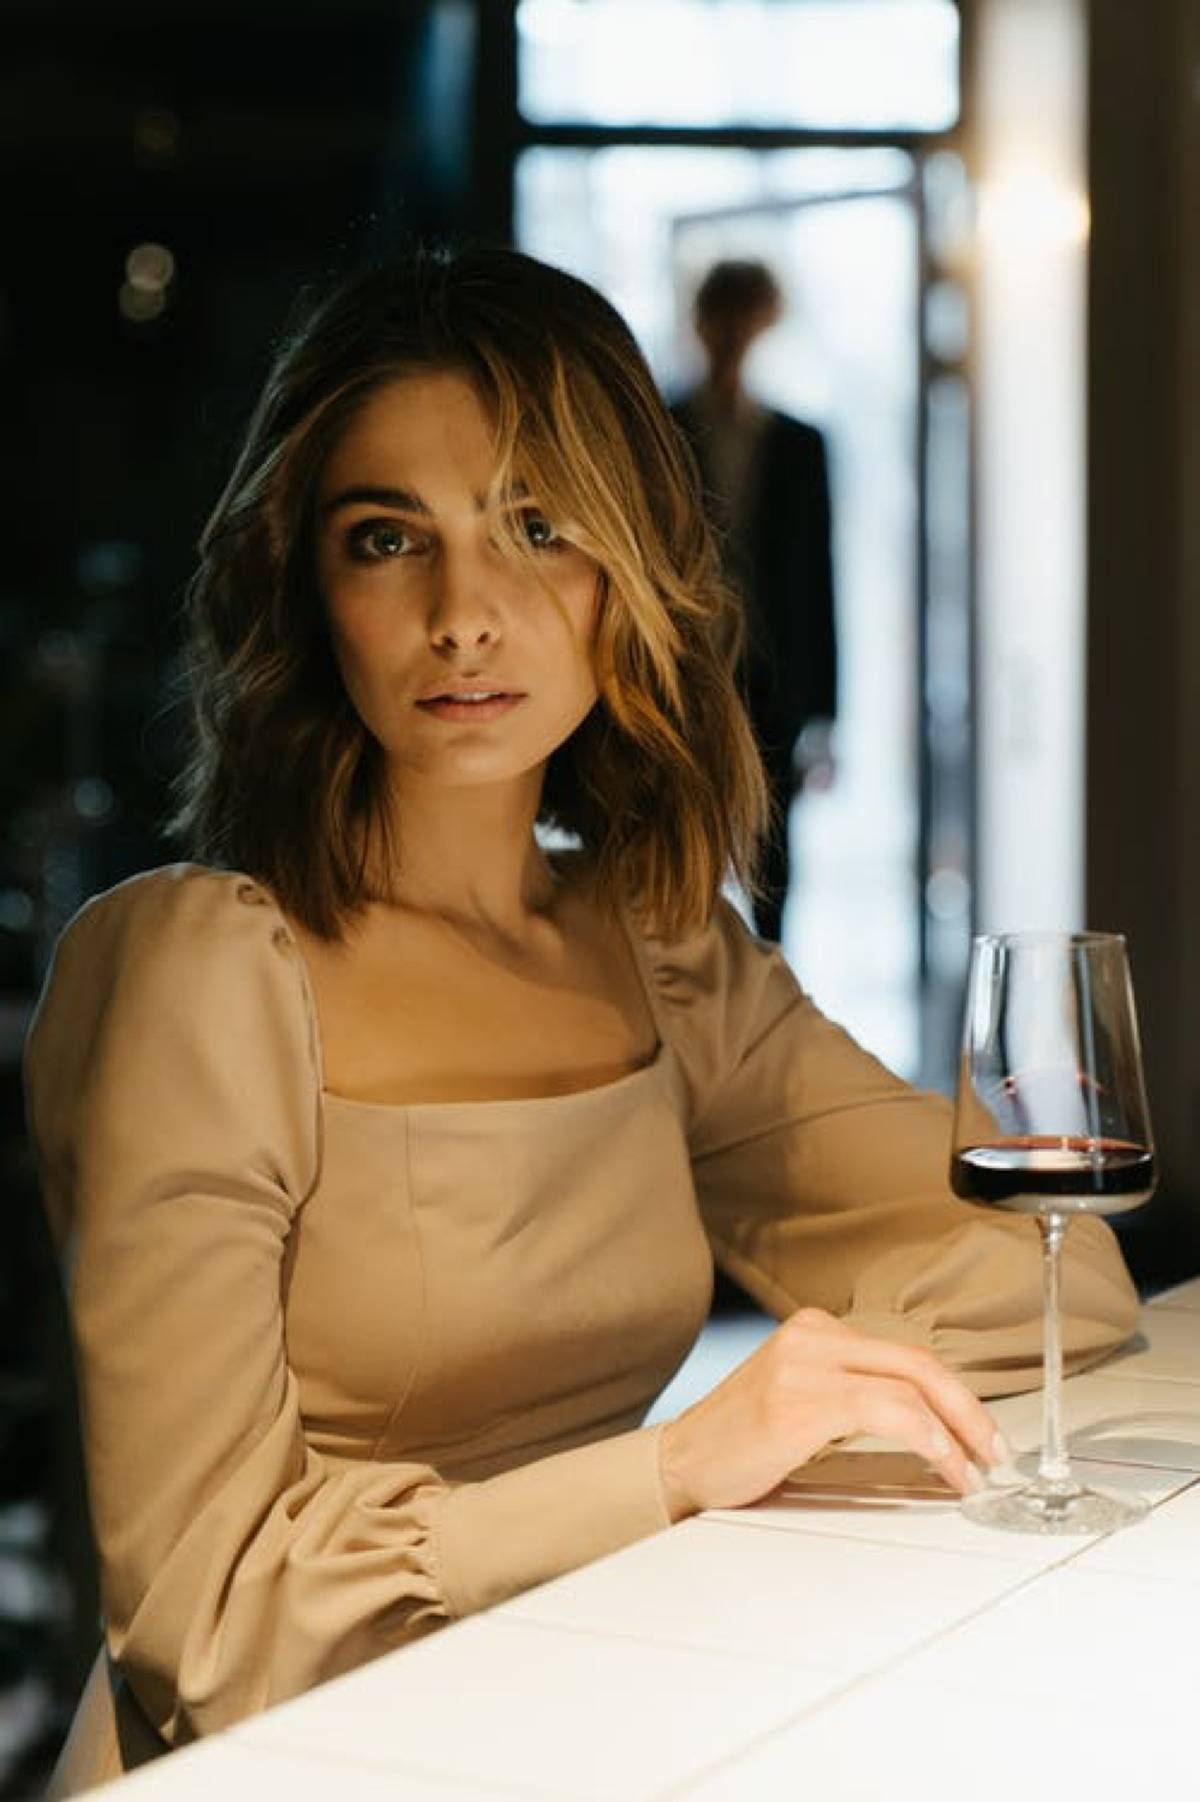 woman sitting with glass of red wine at bar